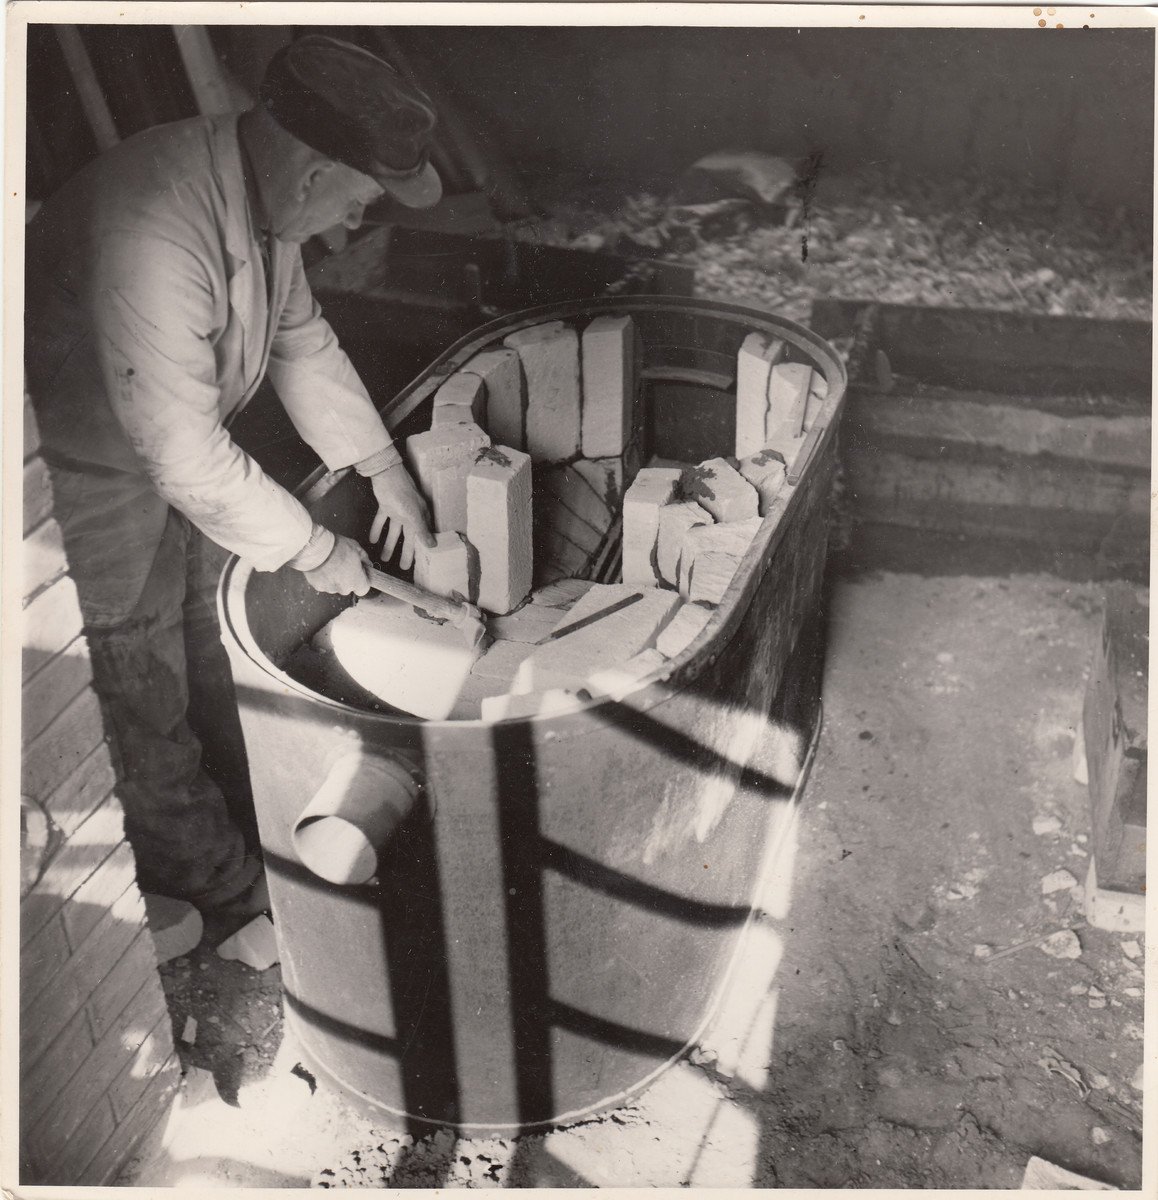 A Jewish forced laborer works at a construction site in Hajduhadhaz.